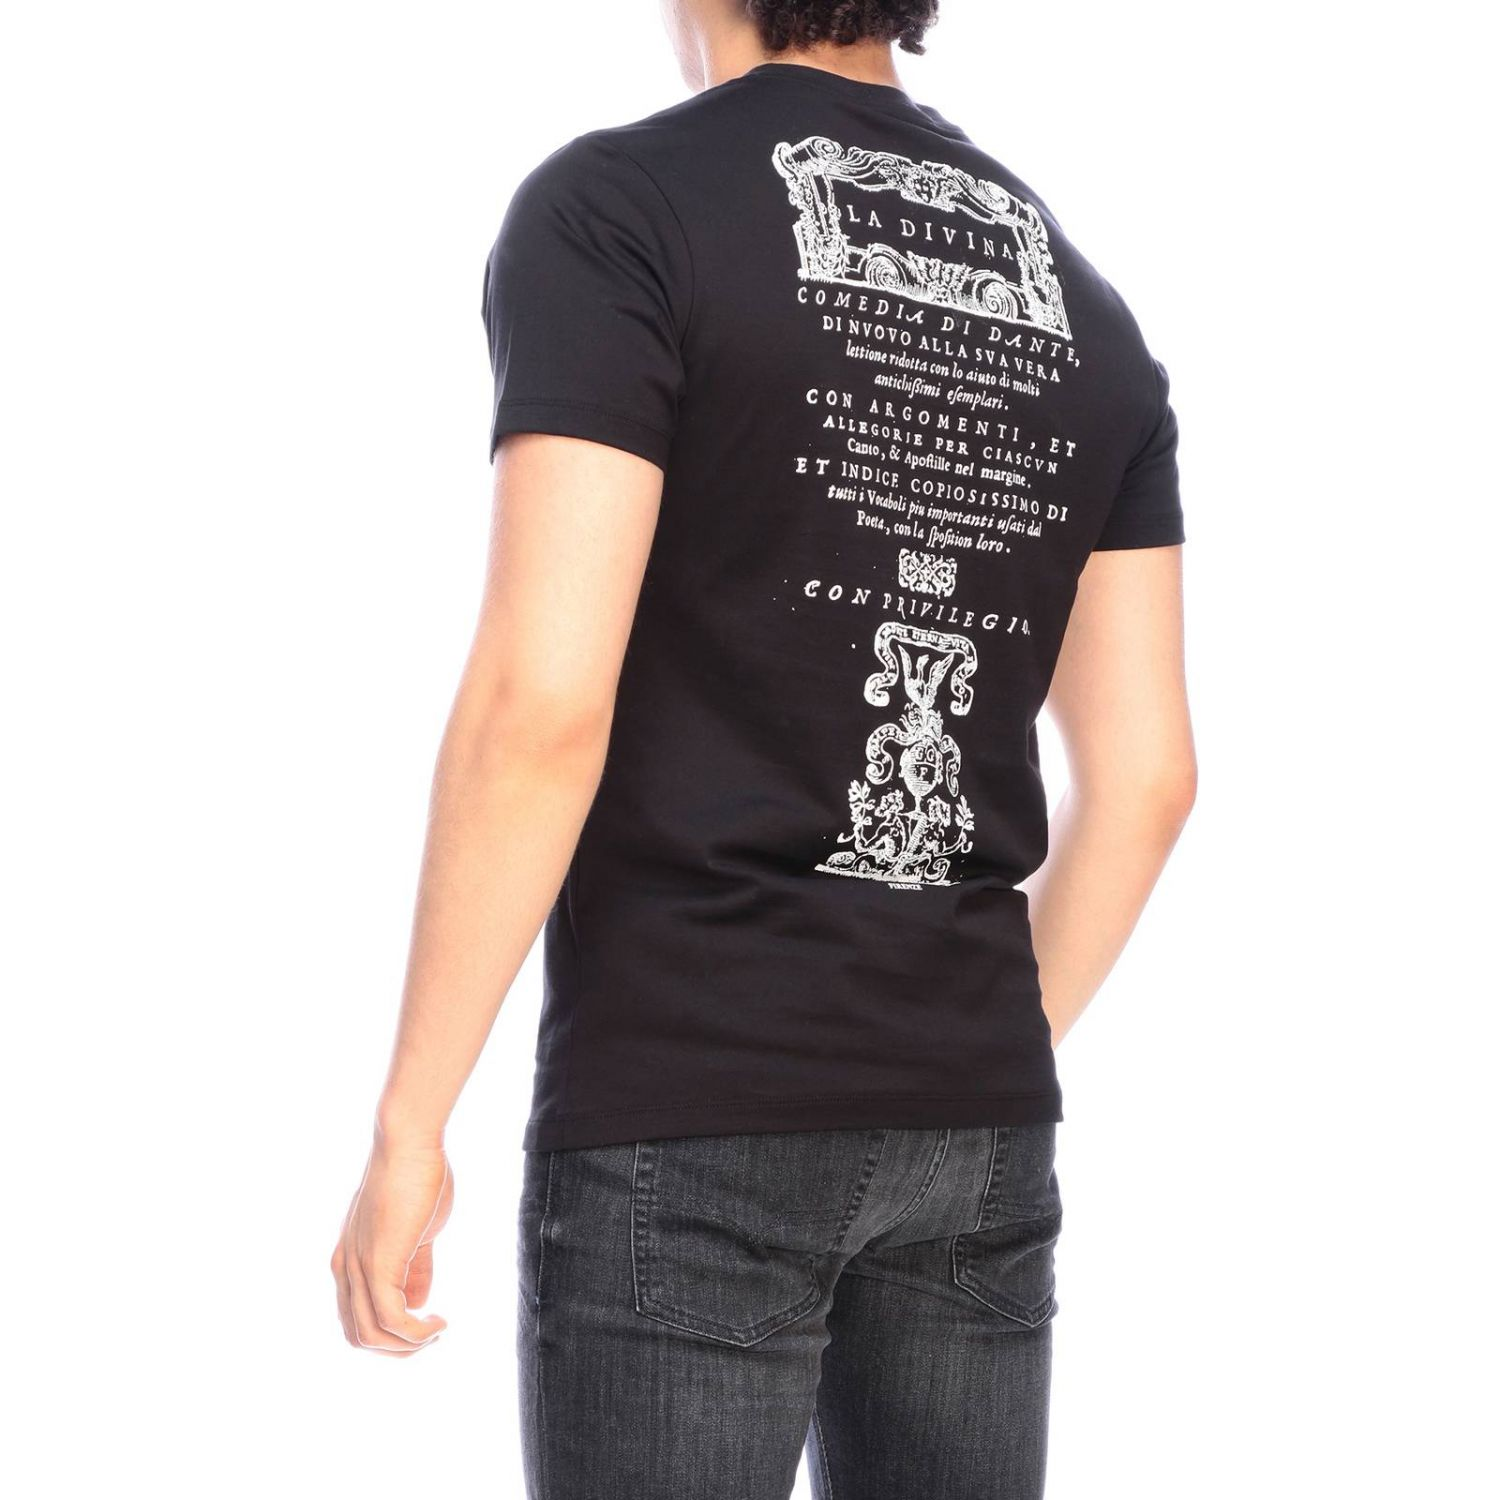 T-shirt men Roberto Cavalli black 3